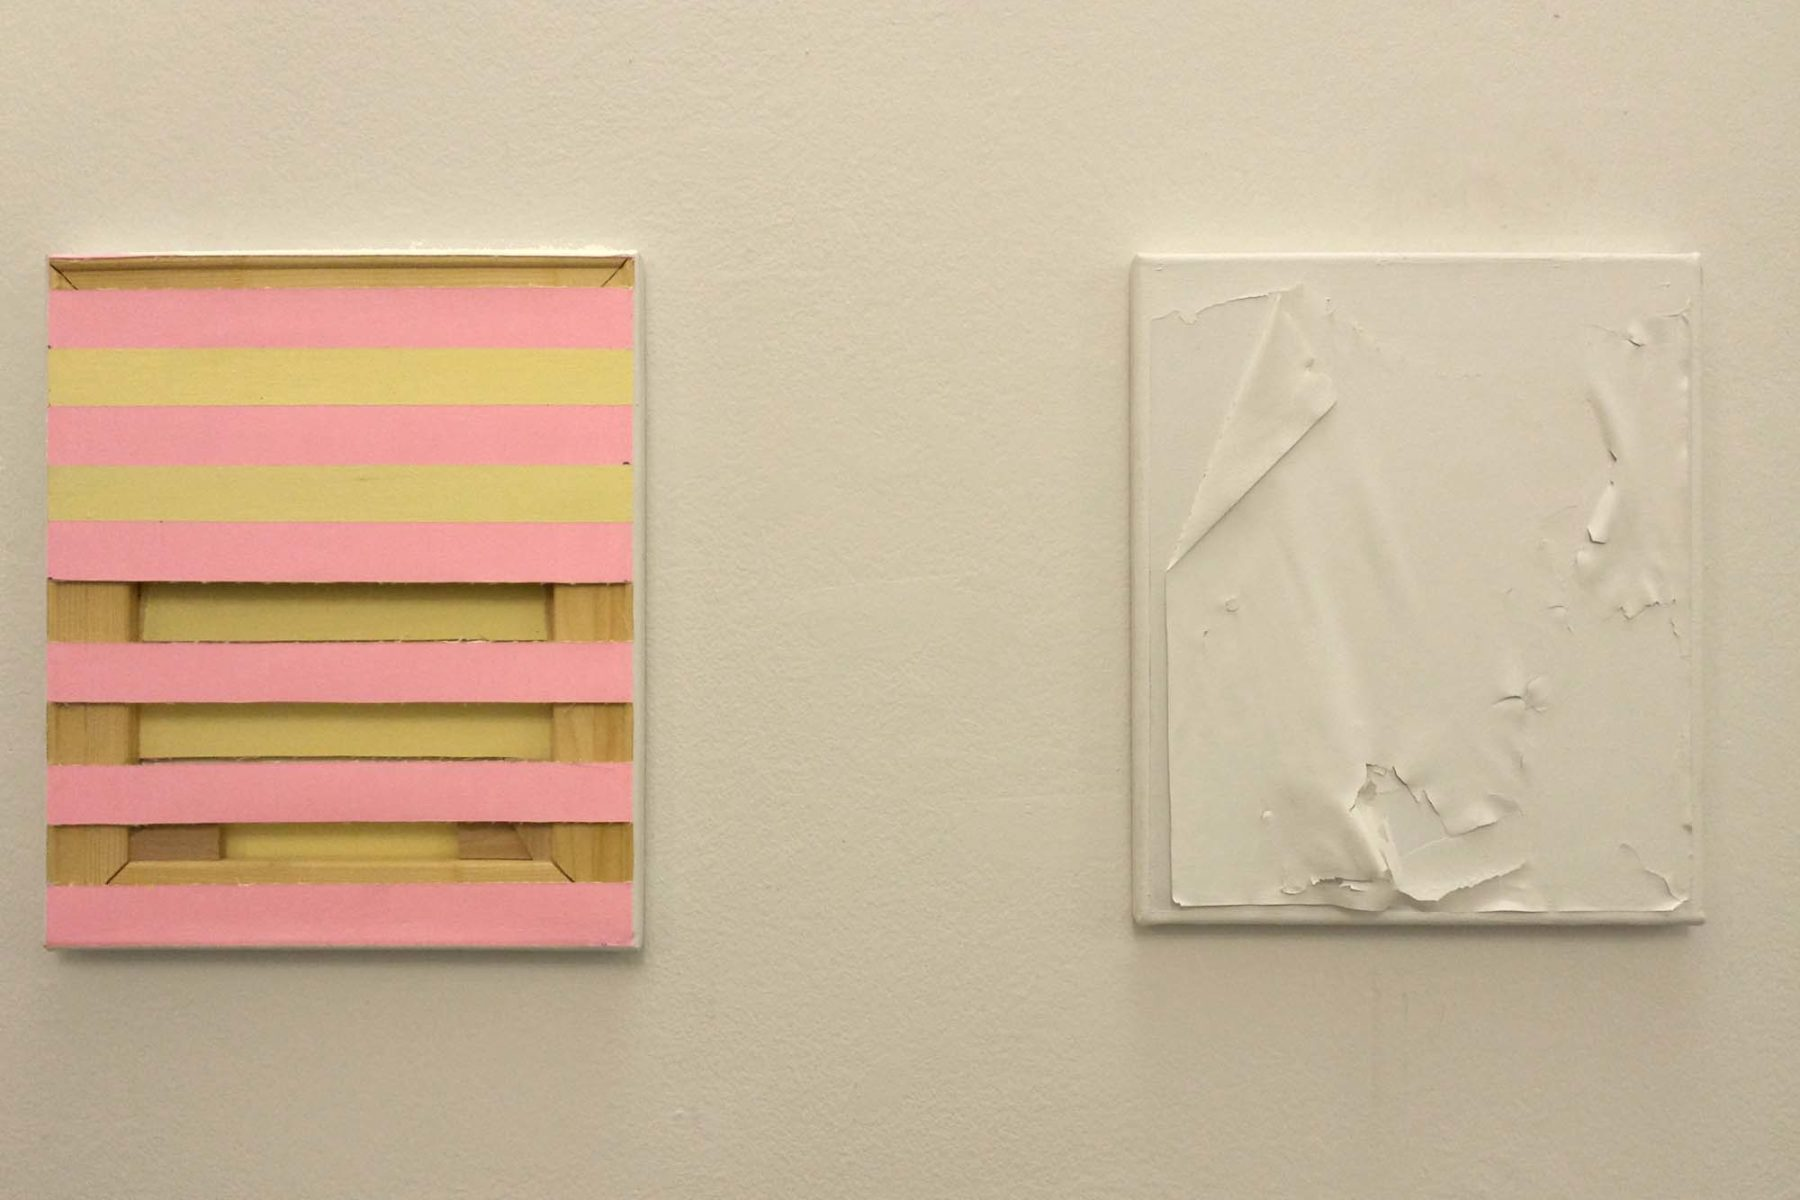 Johanna Binder, installation view at Studio Tommaseo